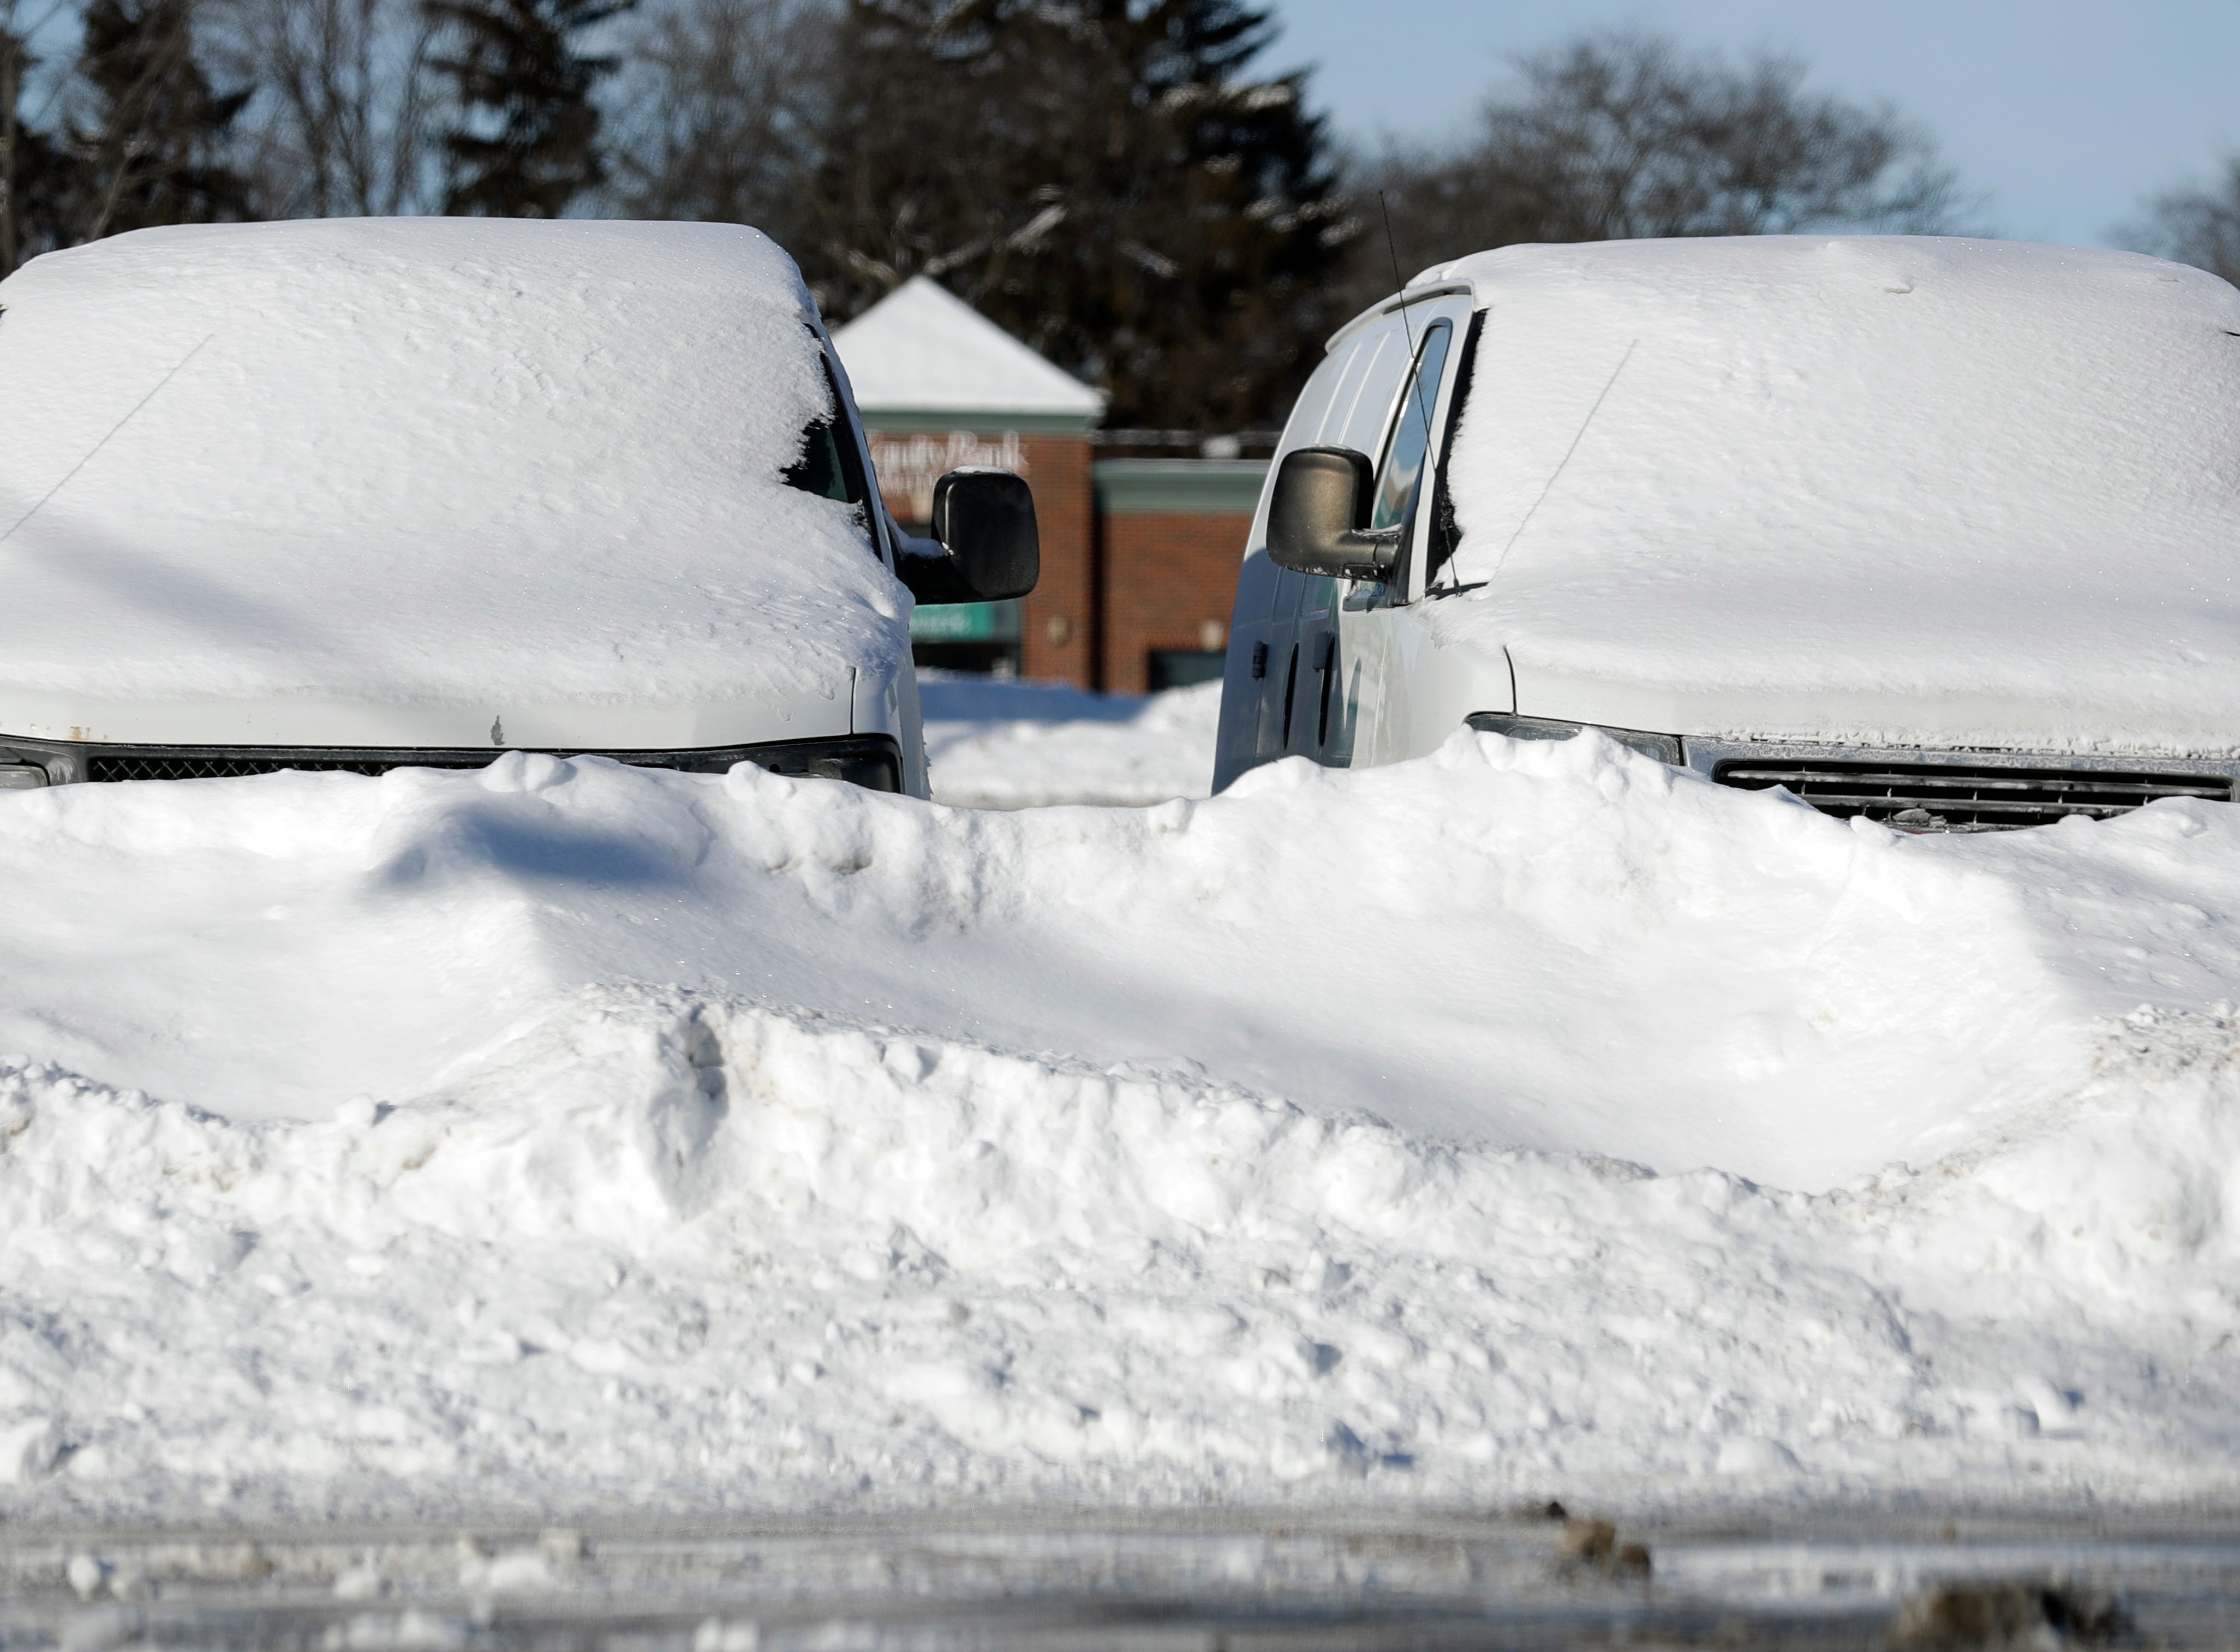 Cars are covered by snow in Buffalo Grove, Ill., Thursday, Jan. 31, 2019. The painfully cold weather system that put much of the Midwest into a historic deep freeze was expected to ease Thursday, though temperatures still tumbled to record lows in some places.